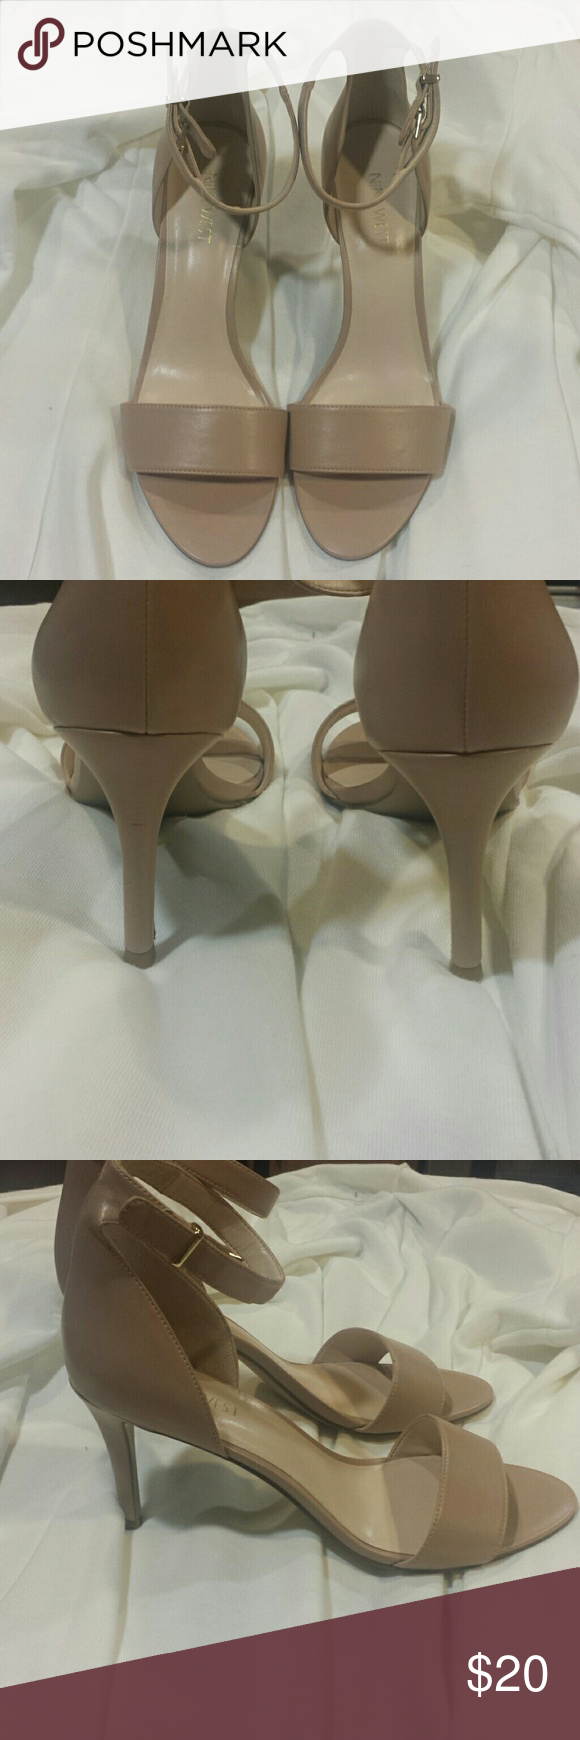 Nine West Heels Nine West Heels. Nude color. Never used. Lost the tag. Slight scuffs on one heel due to storage. Nine West Shoes Heels